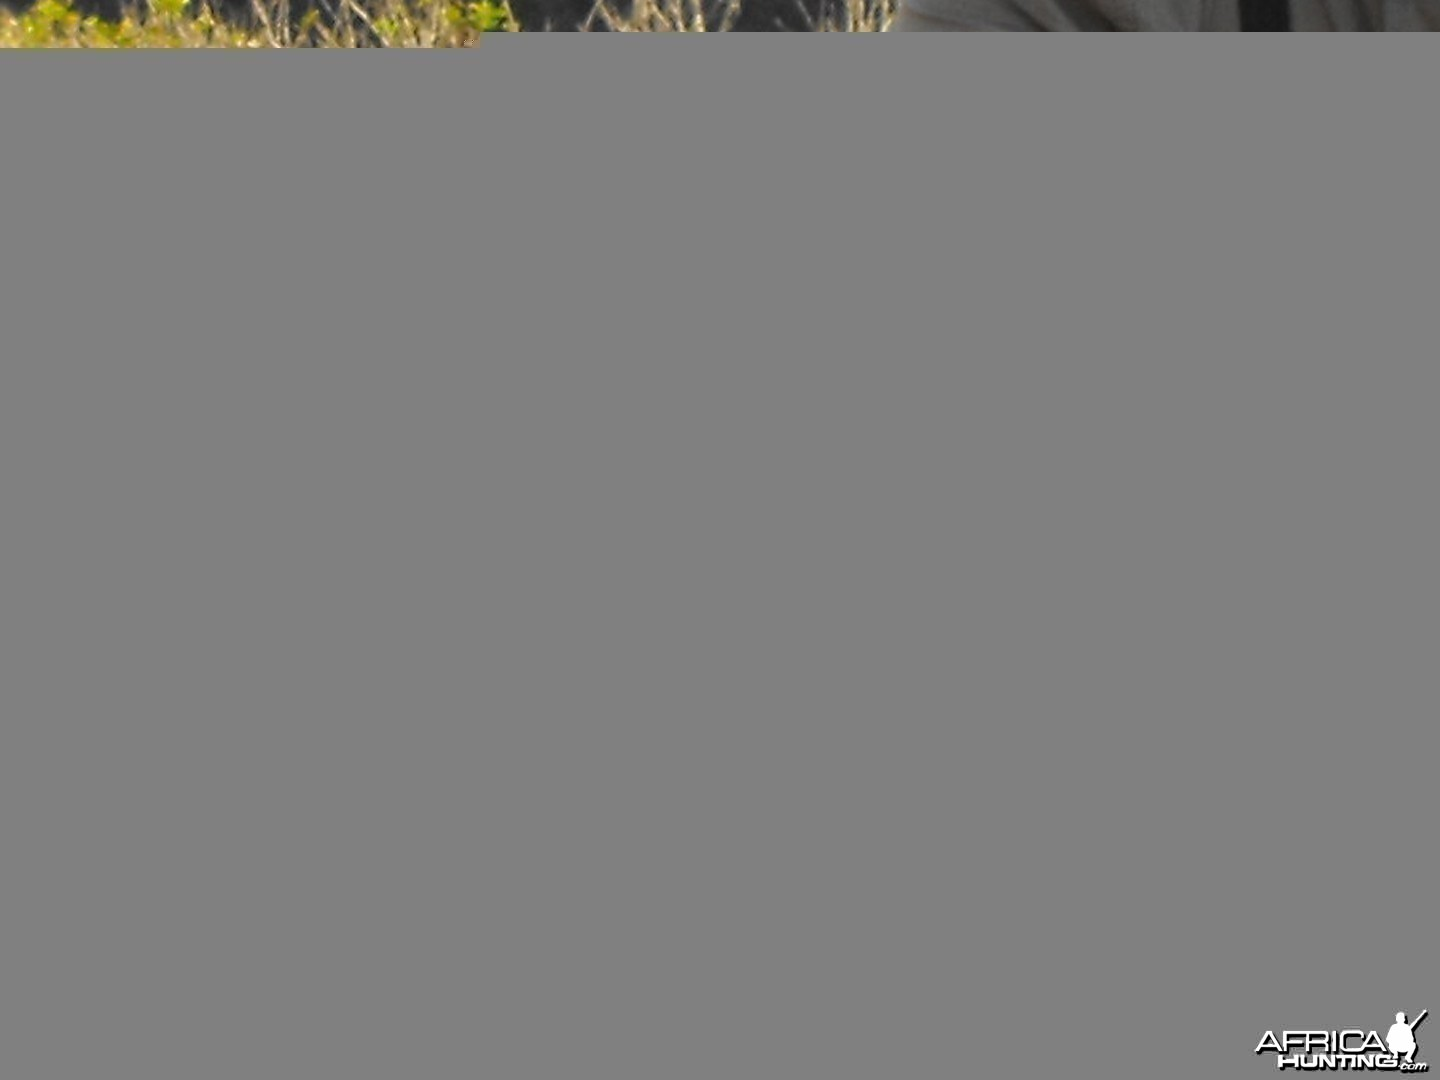 Mouflon sheep Hawaii